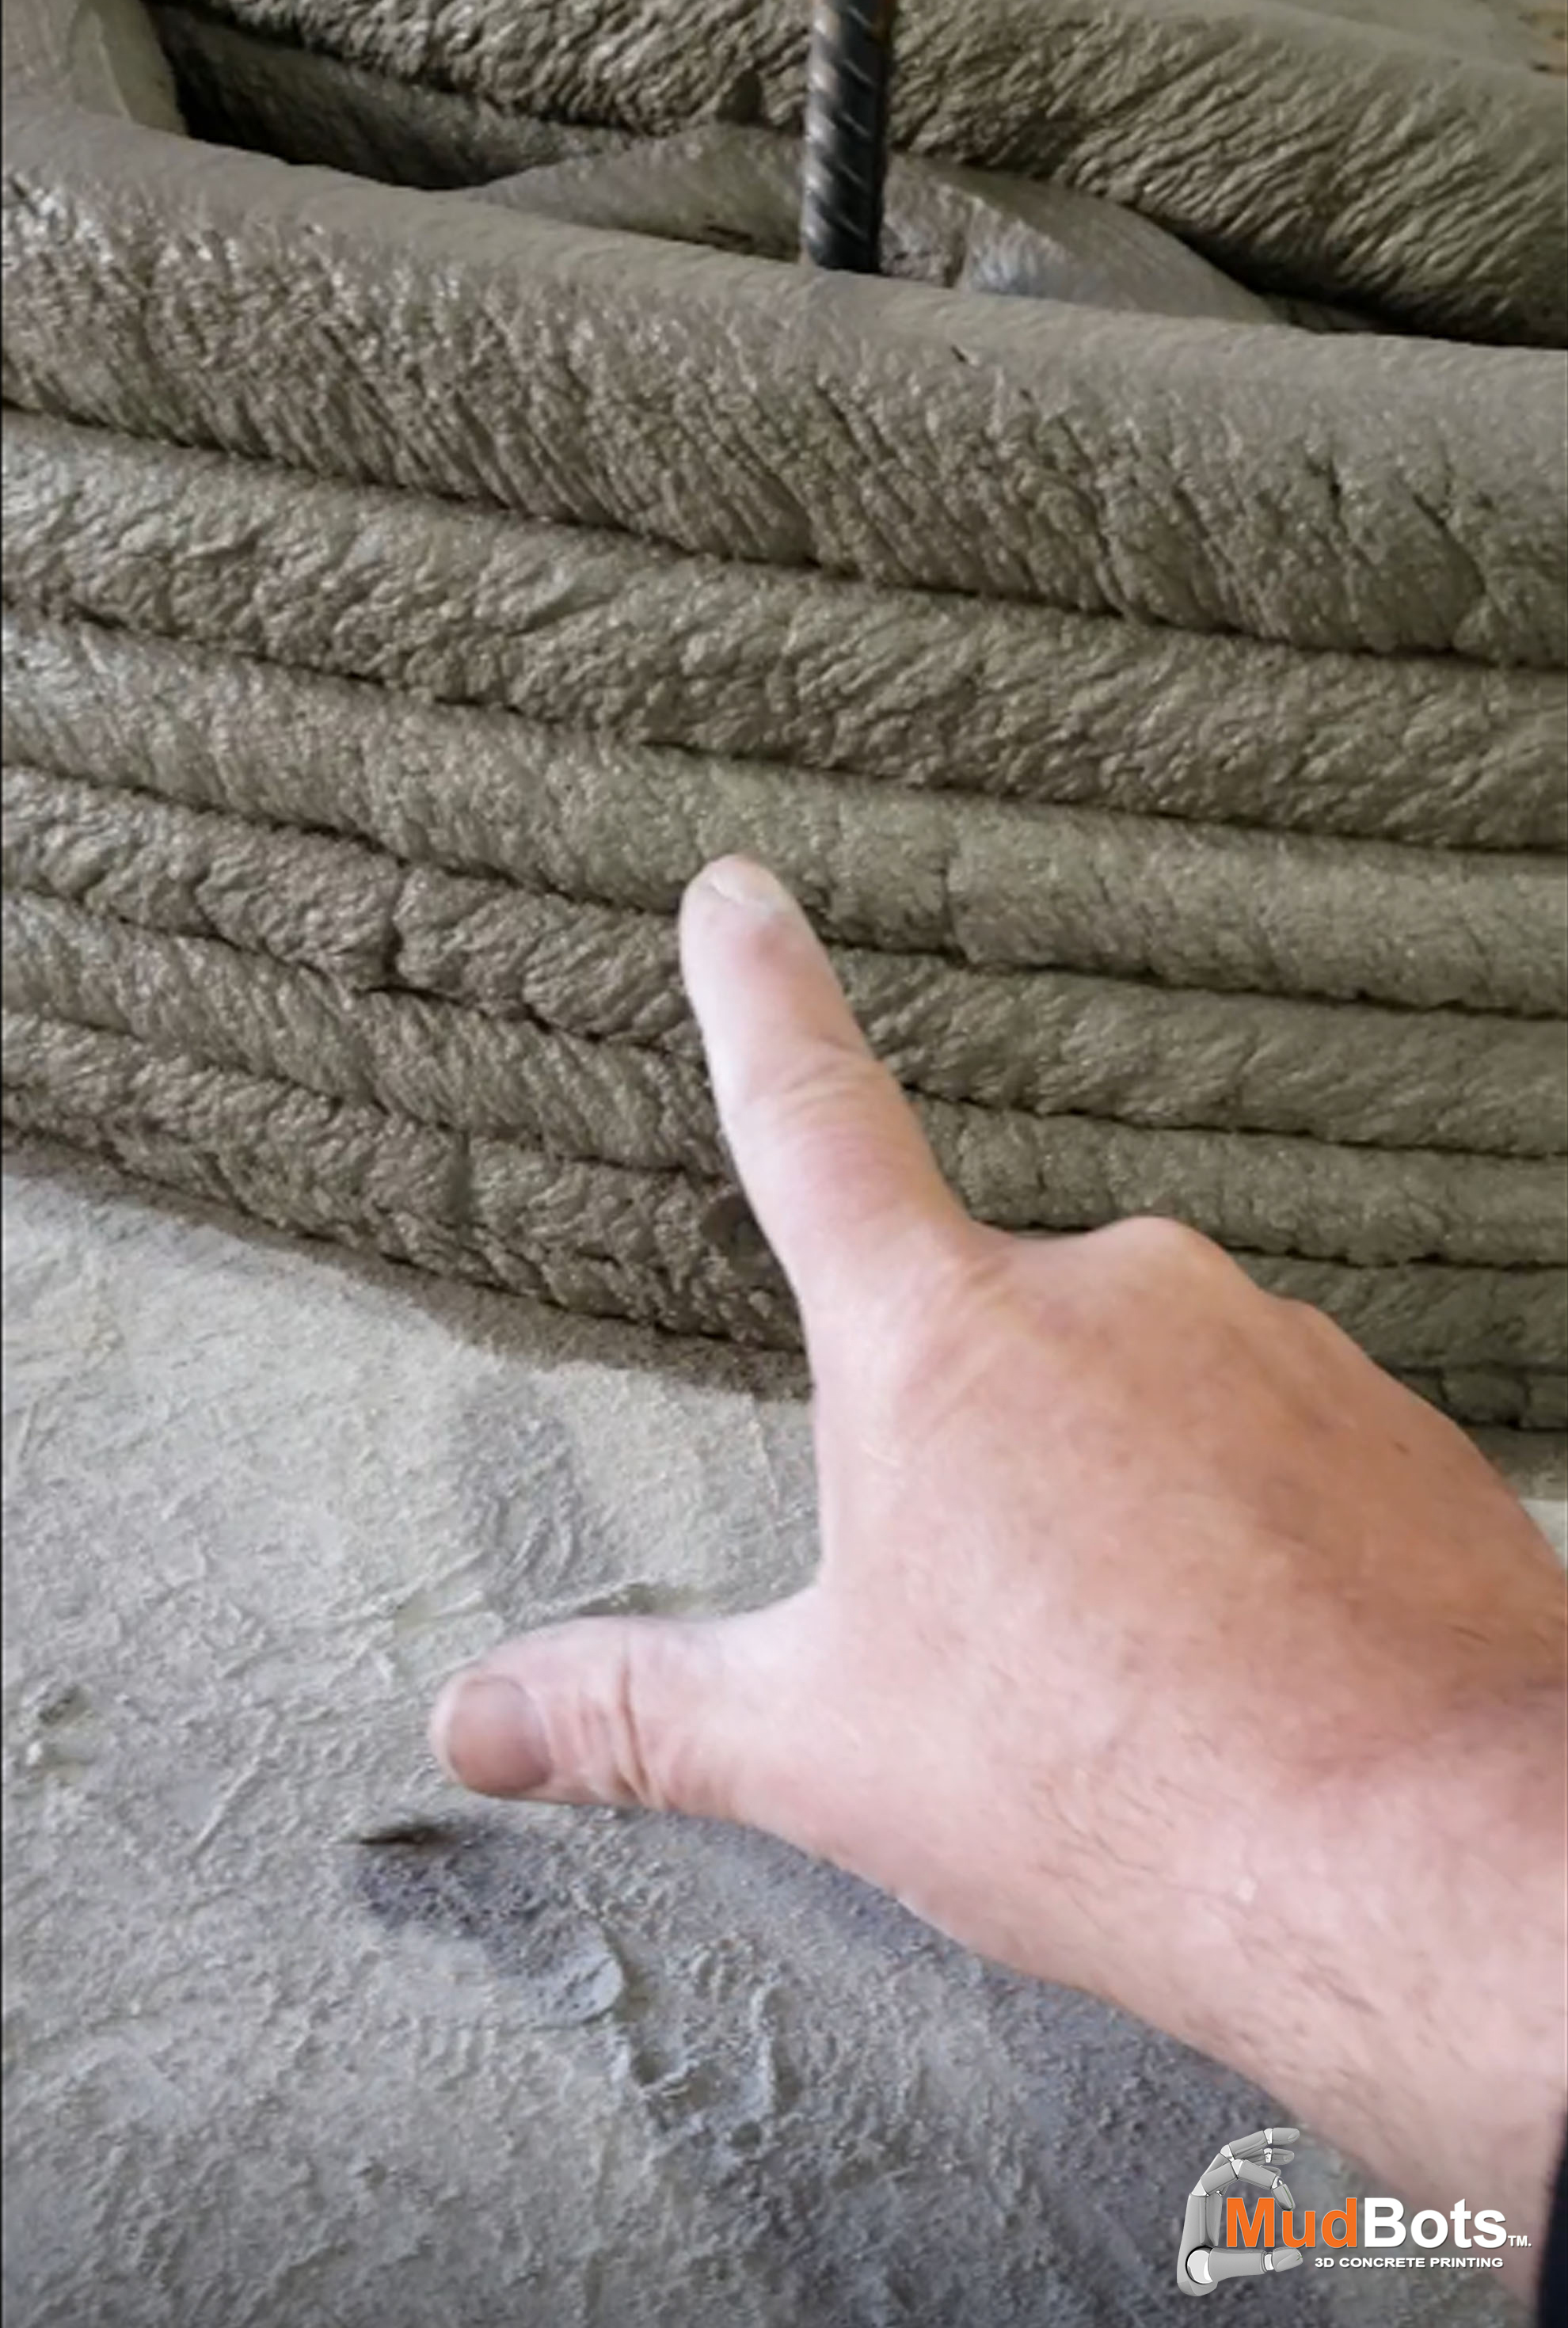 Our 3D concrete printers are capable of printing around rebar for stronger compressive and tensile strength when needed for bearing walls and retainers.